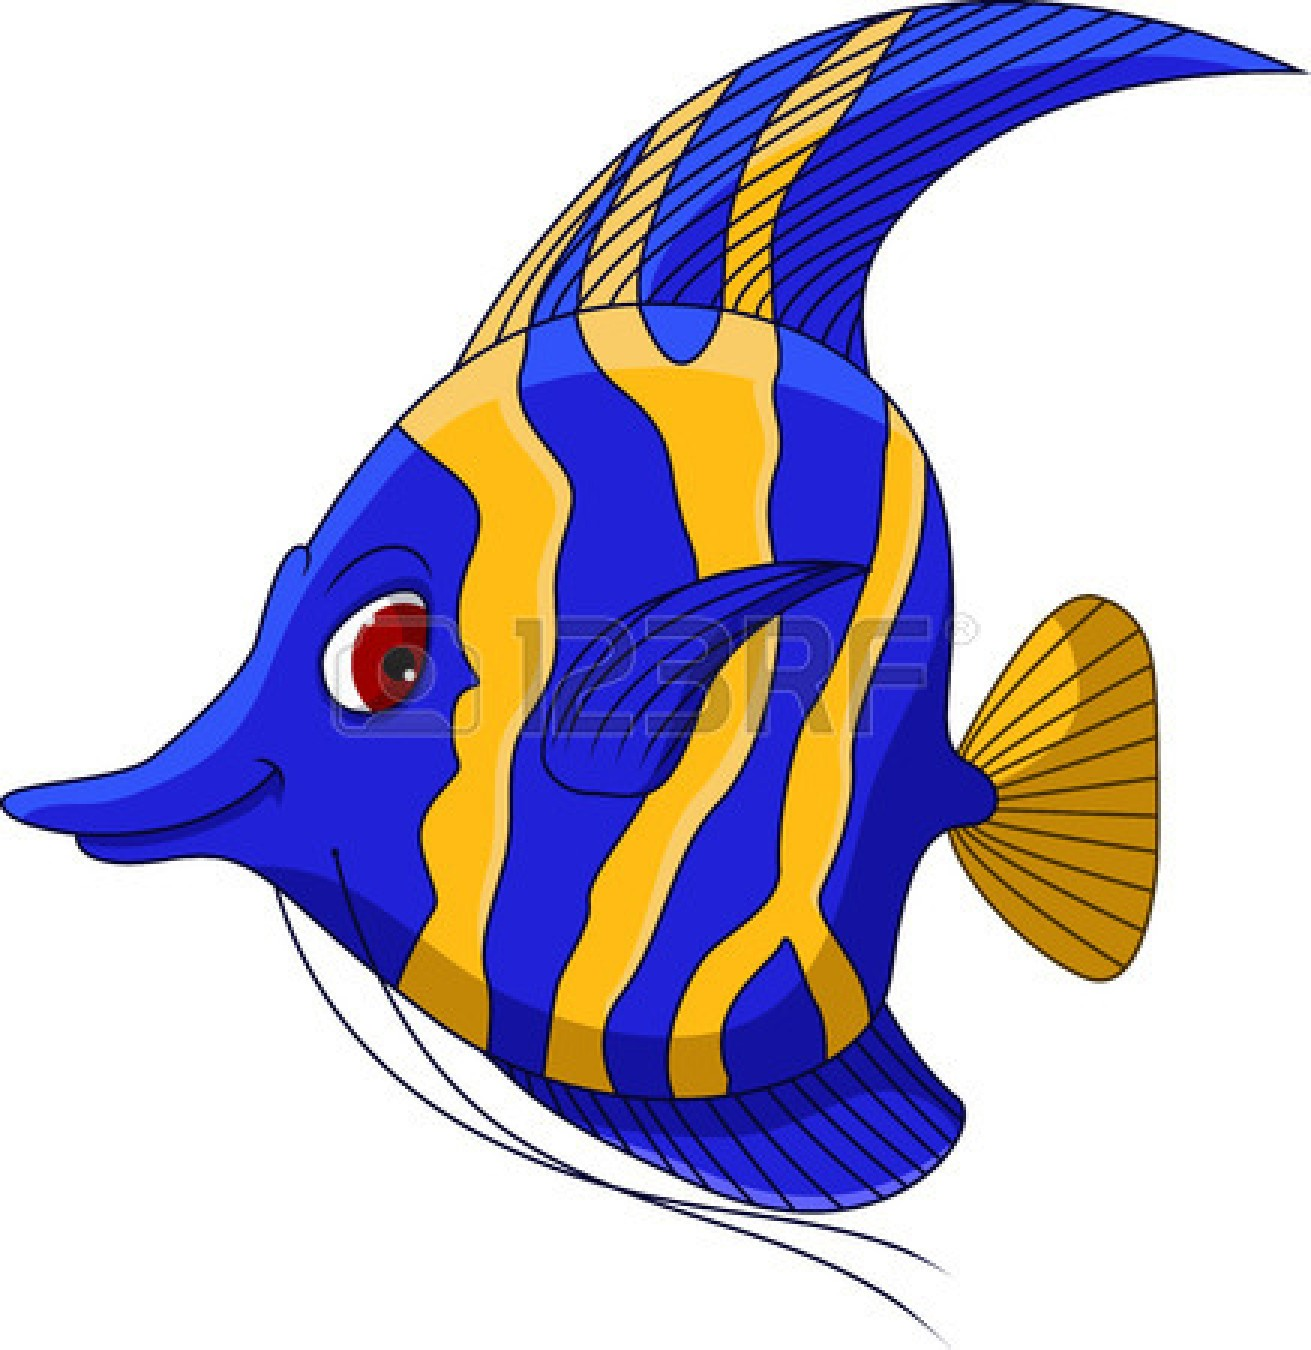 Drawn Angelfish Cartoon #5 - Angel Fish PNG HD